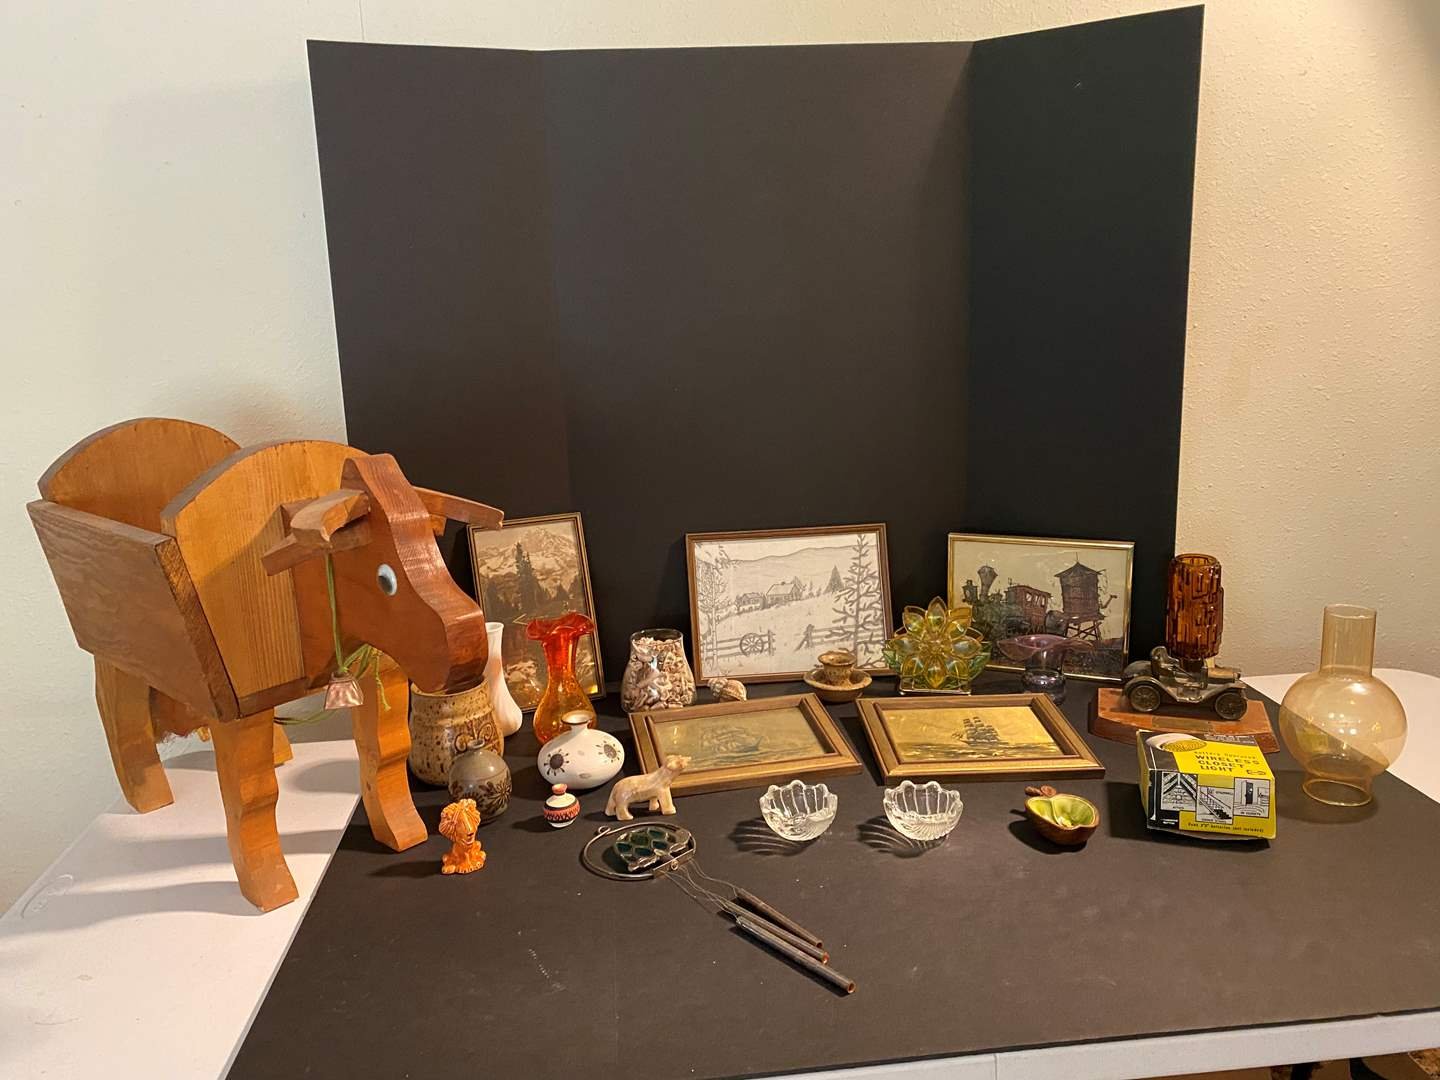 Lot # 144 - Wall Art, Wood Cow Magazine Holder, Small Vases, Wind Chimes & More.. (main image)